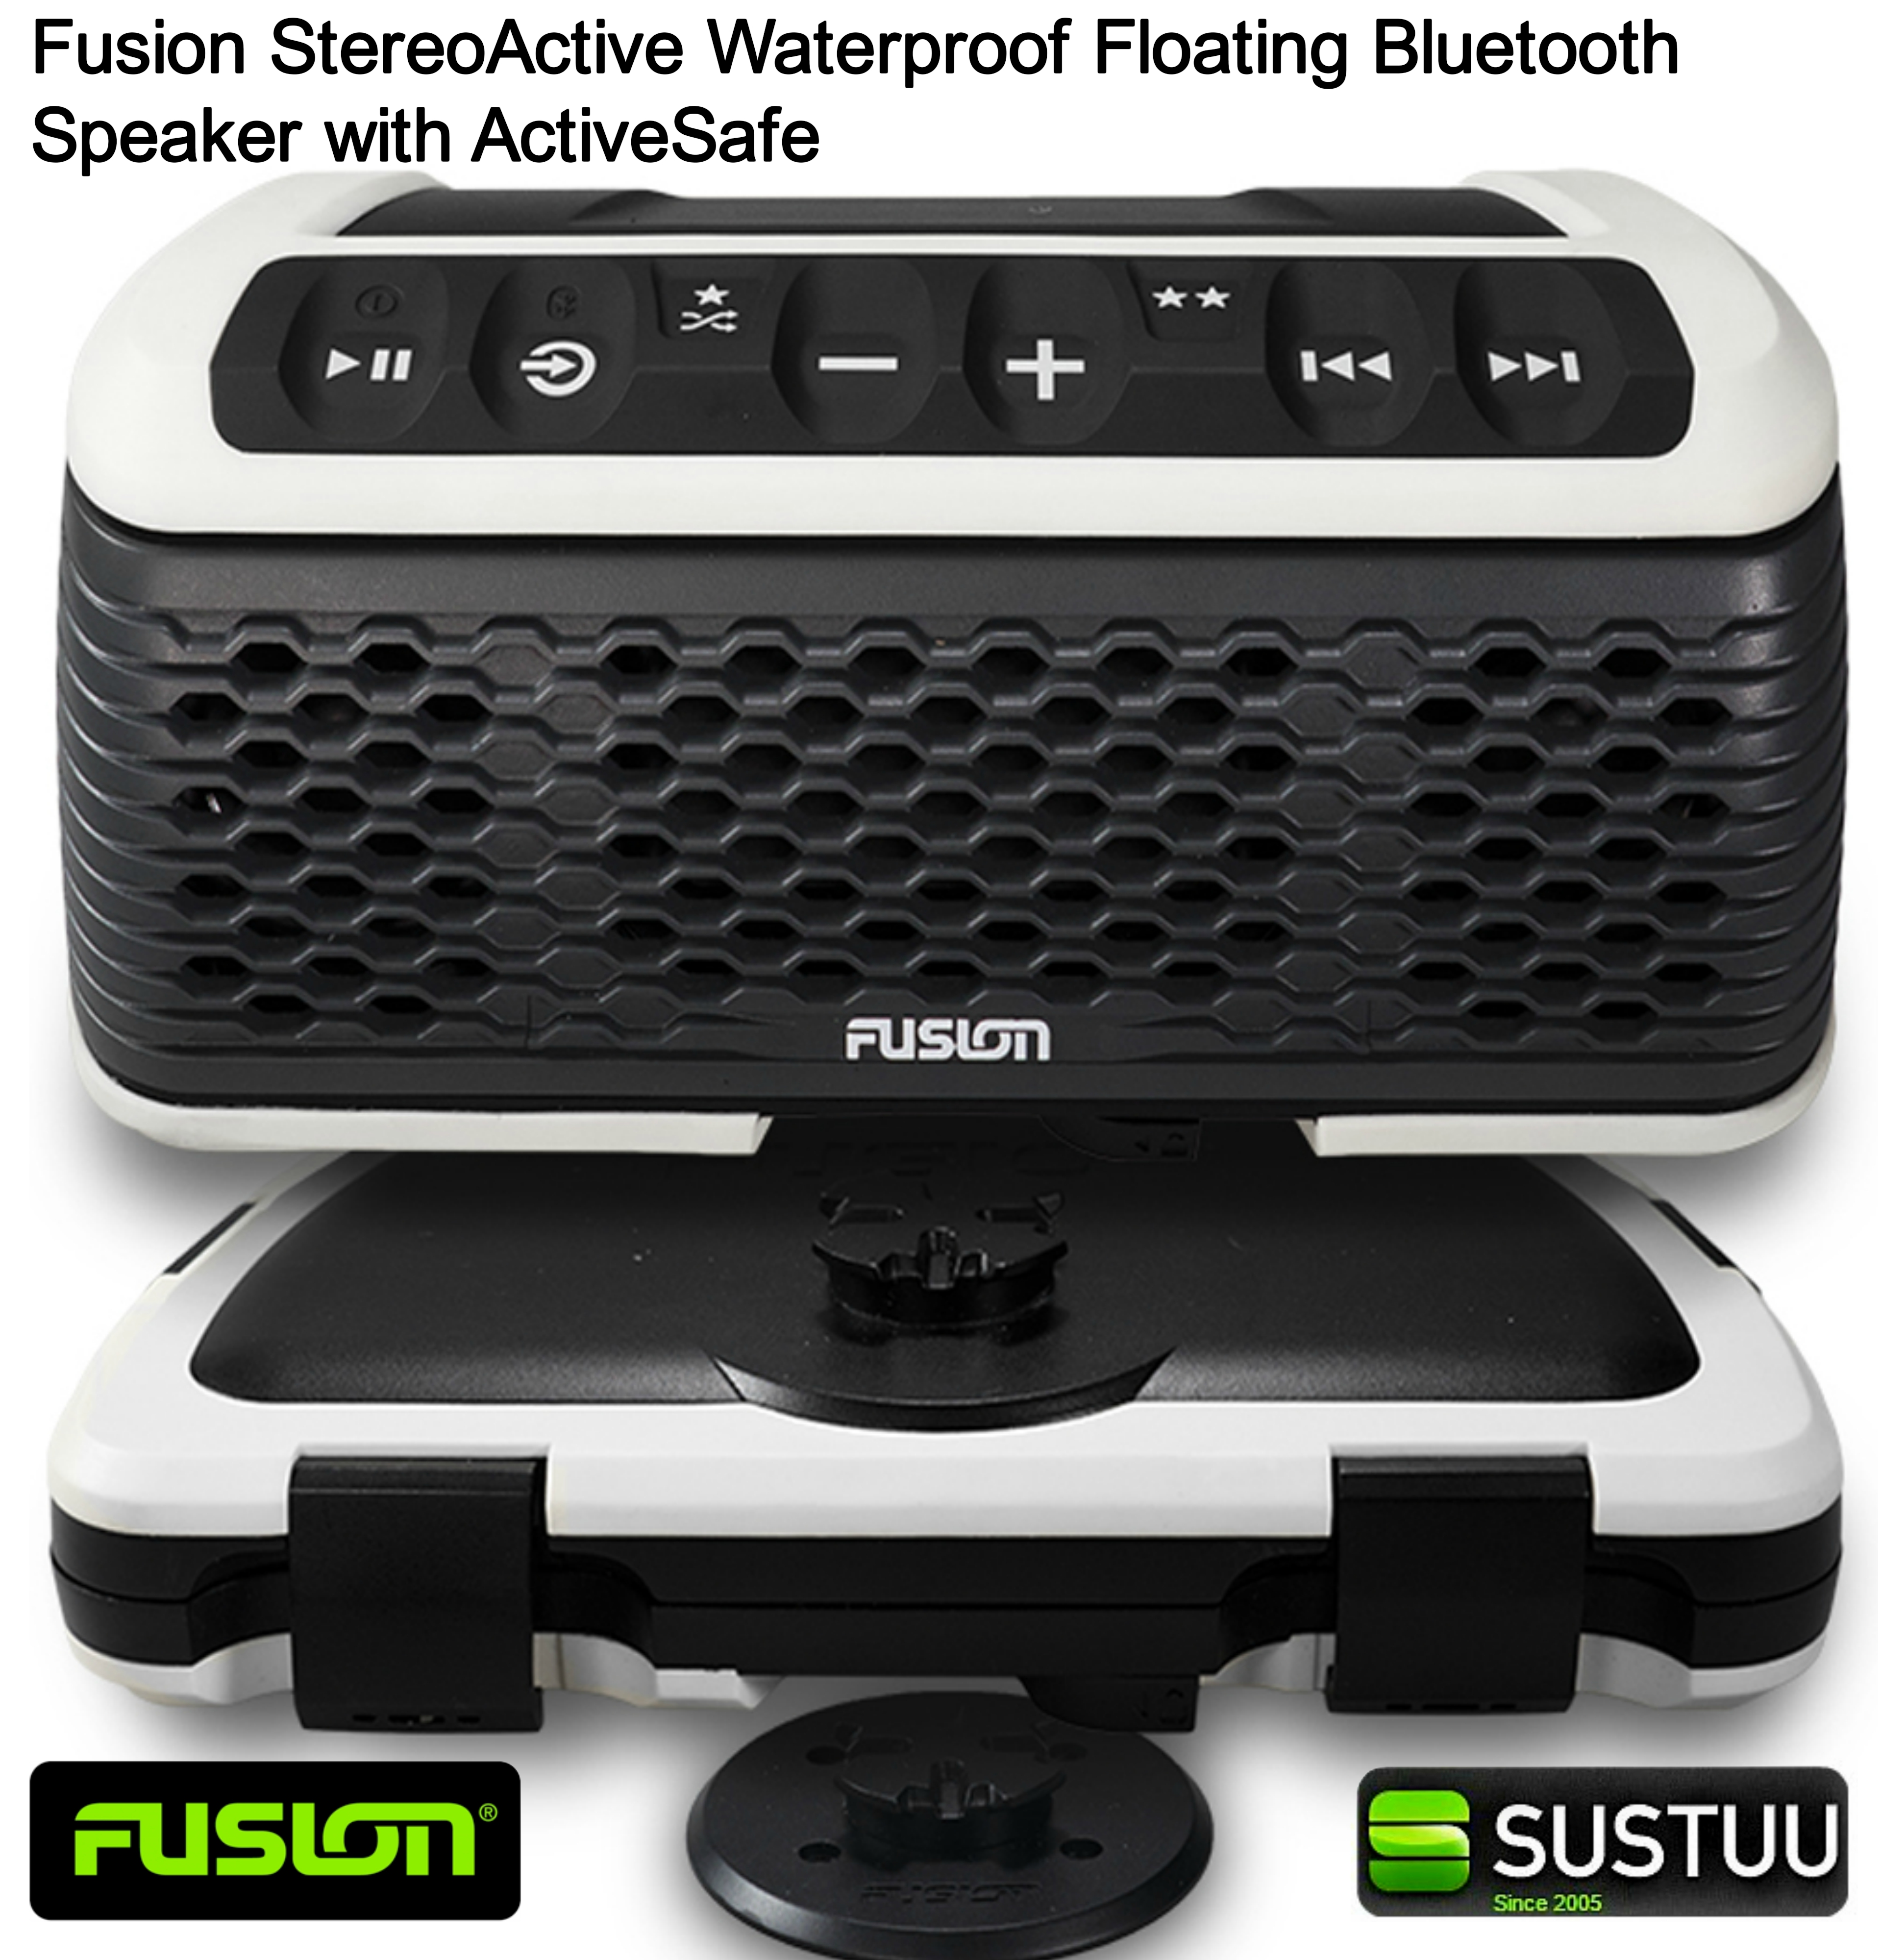 Fusion StereoActive Waterproof Floating Bluetooth Speaker with ActiveSafe WHITE